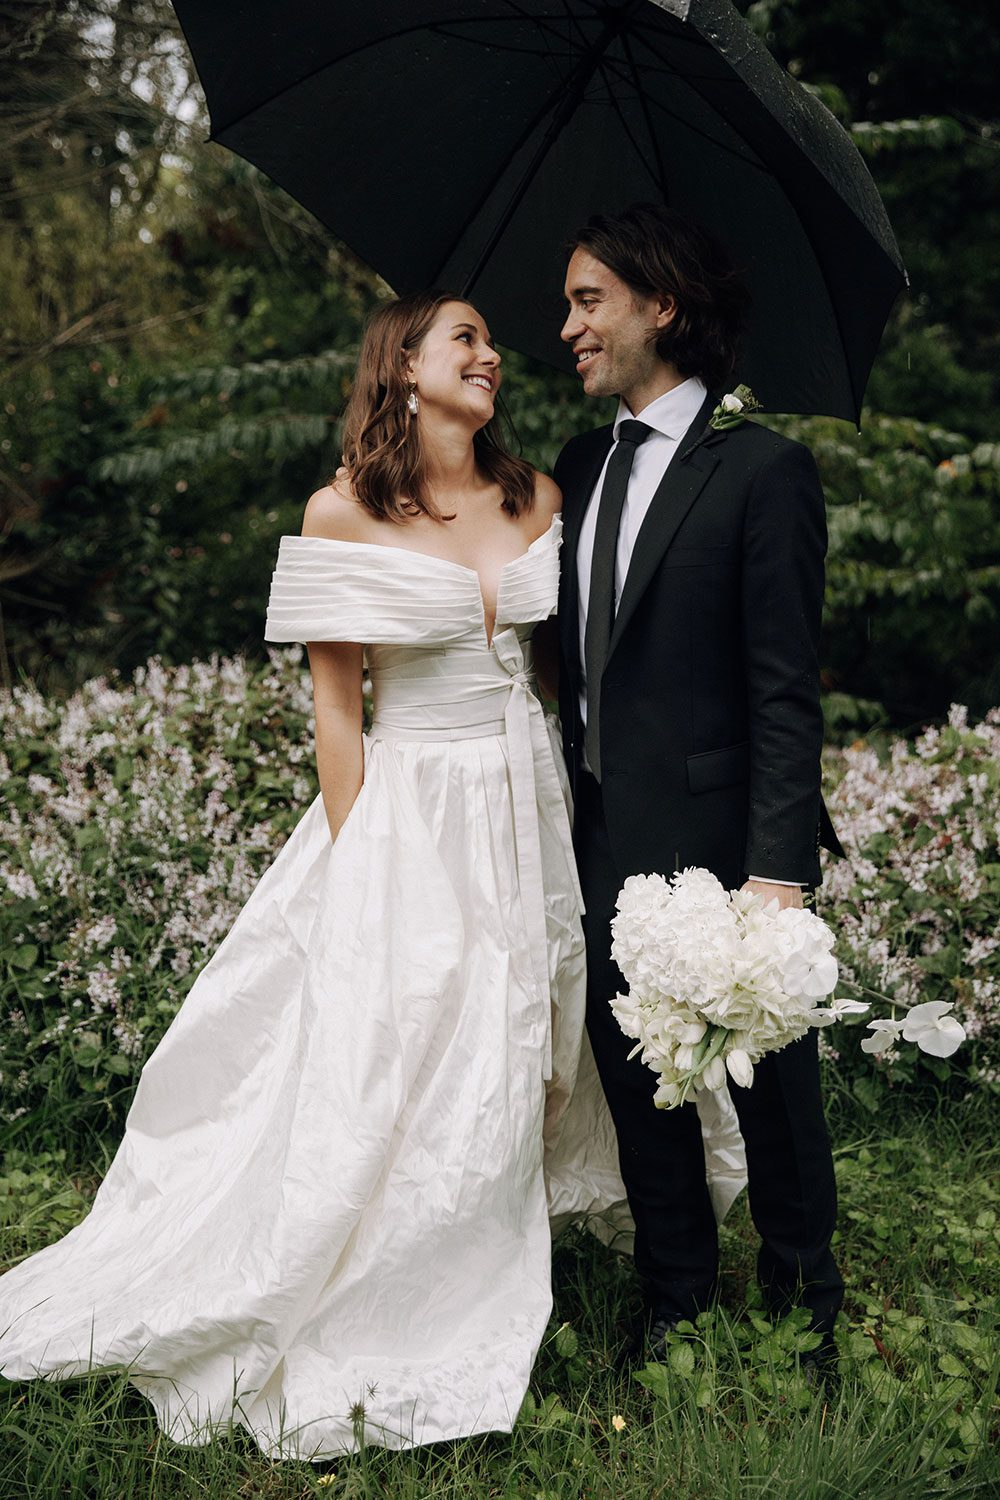 Bride wearing bespoke off shoulder bodice made with silk dupion and long train by NZ wedding dress maker Vinka Designs - laughing with groom under umbrella outside